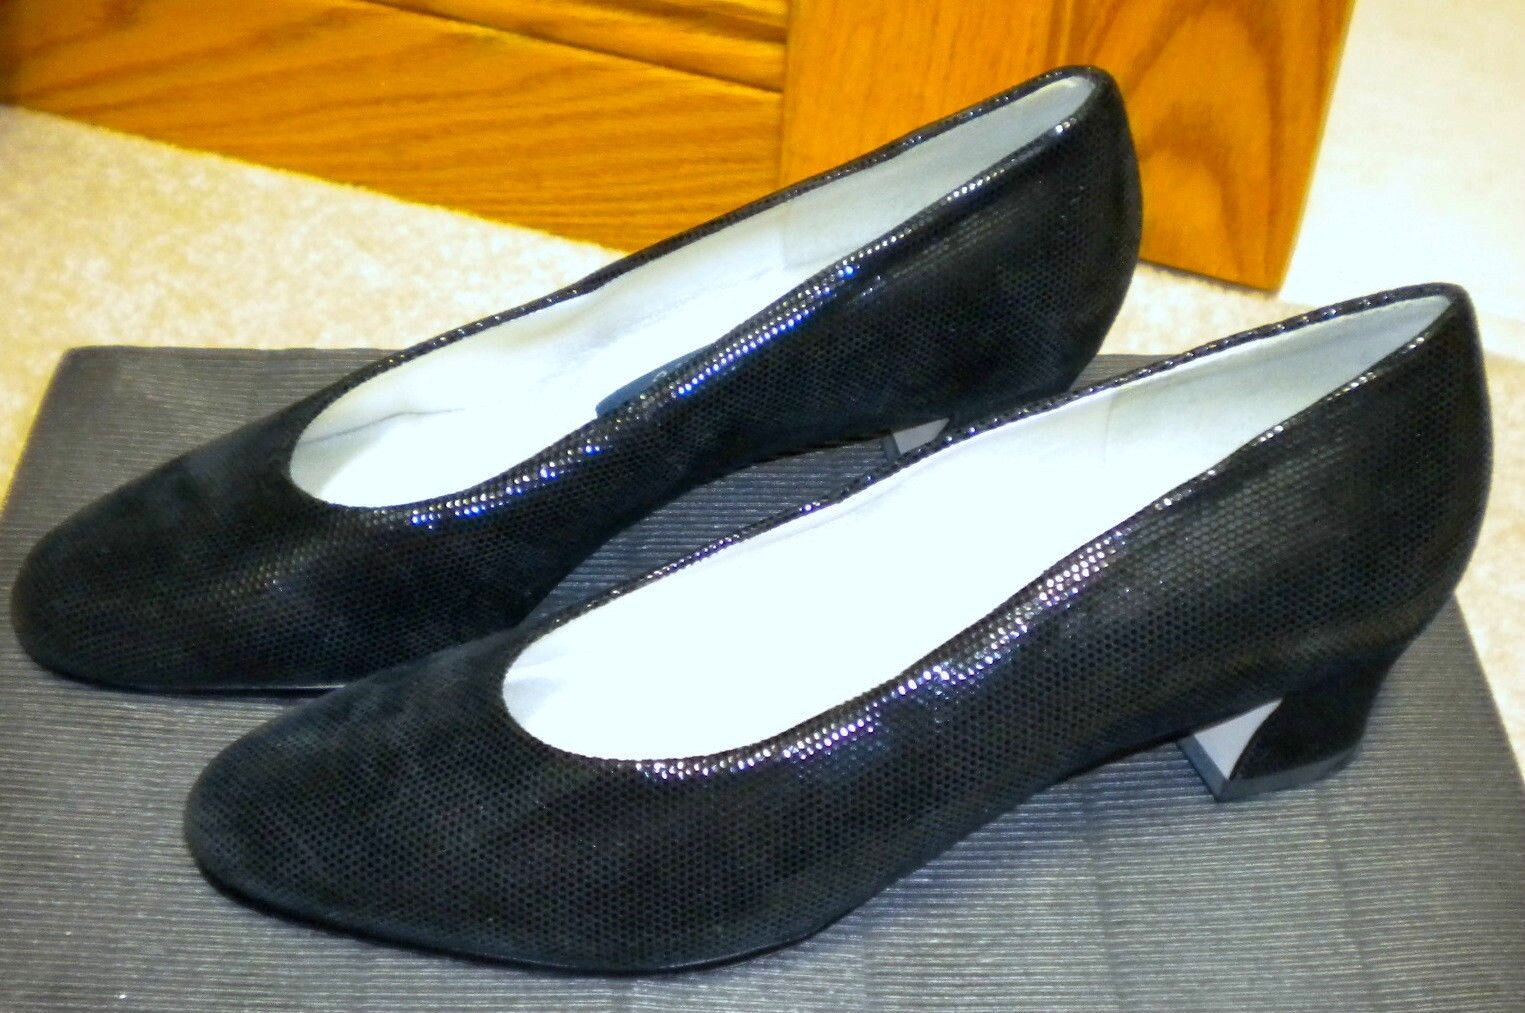 Excellent Condition Selby Heels Comfort Flex Slip-on Black Leather Pumps Heels Selby Shoes 6 b80fad